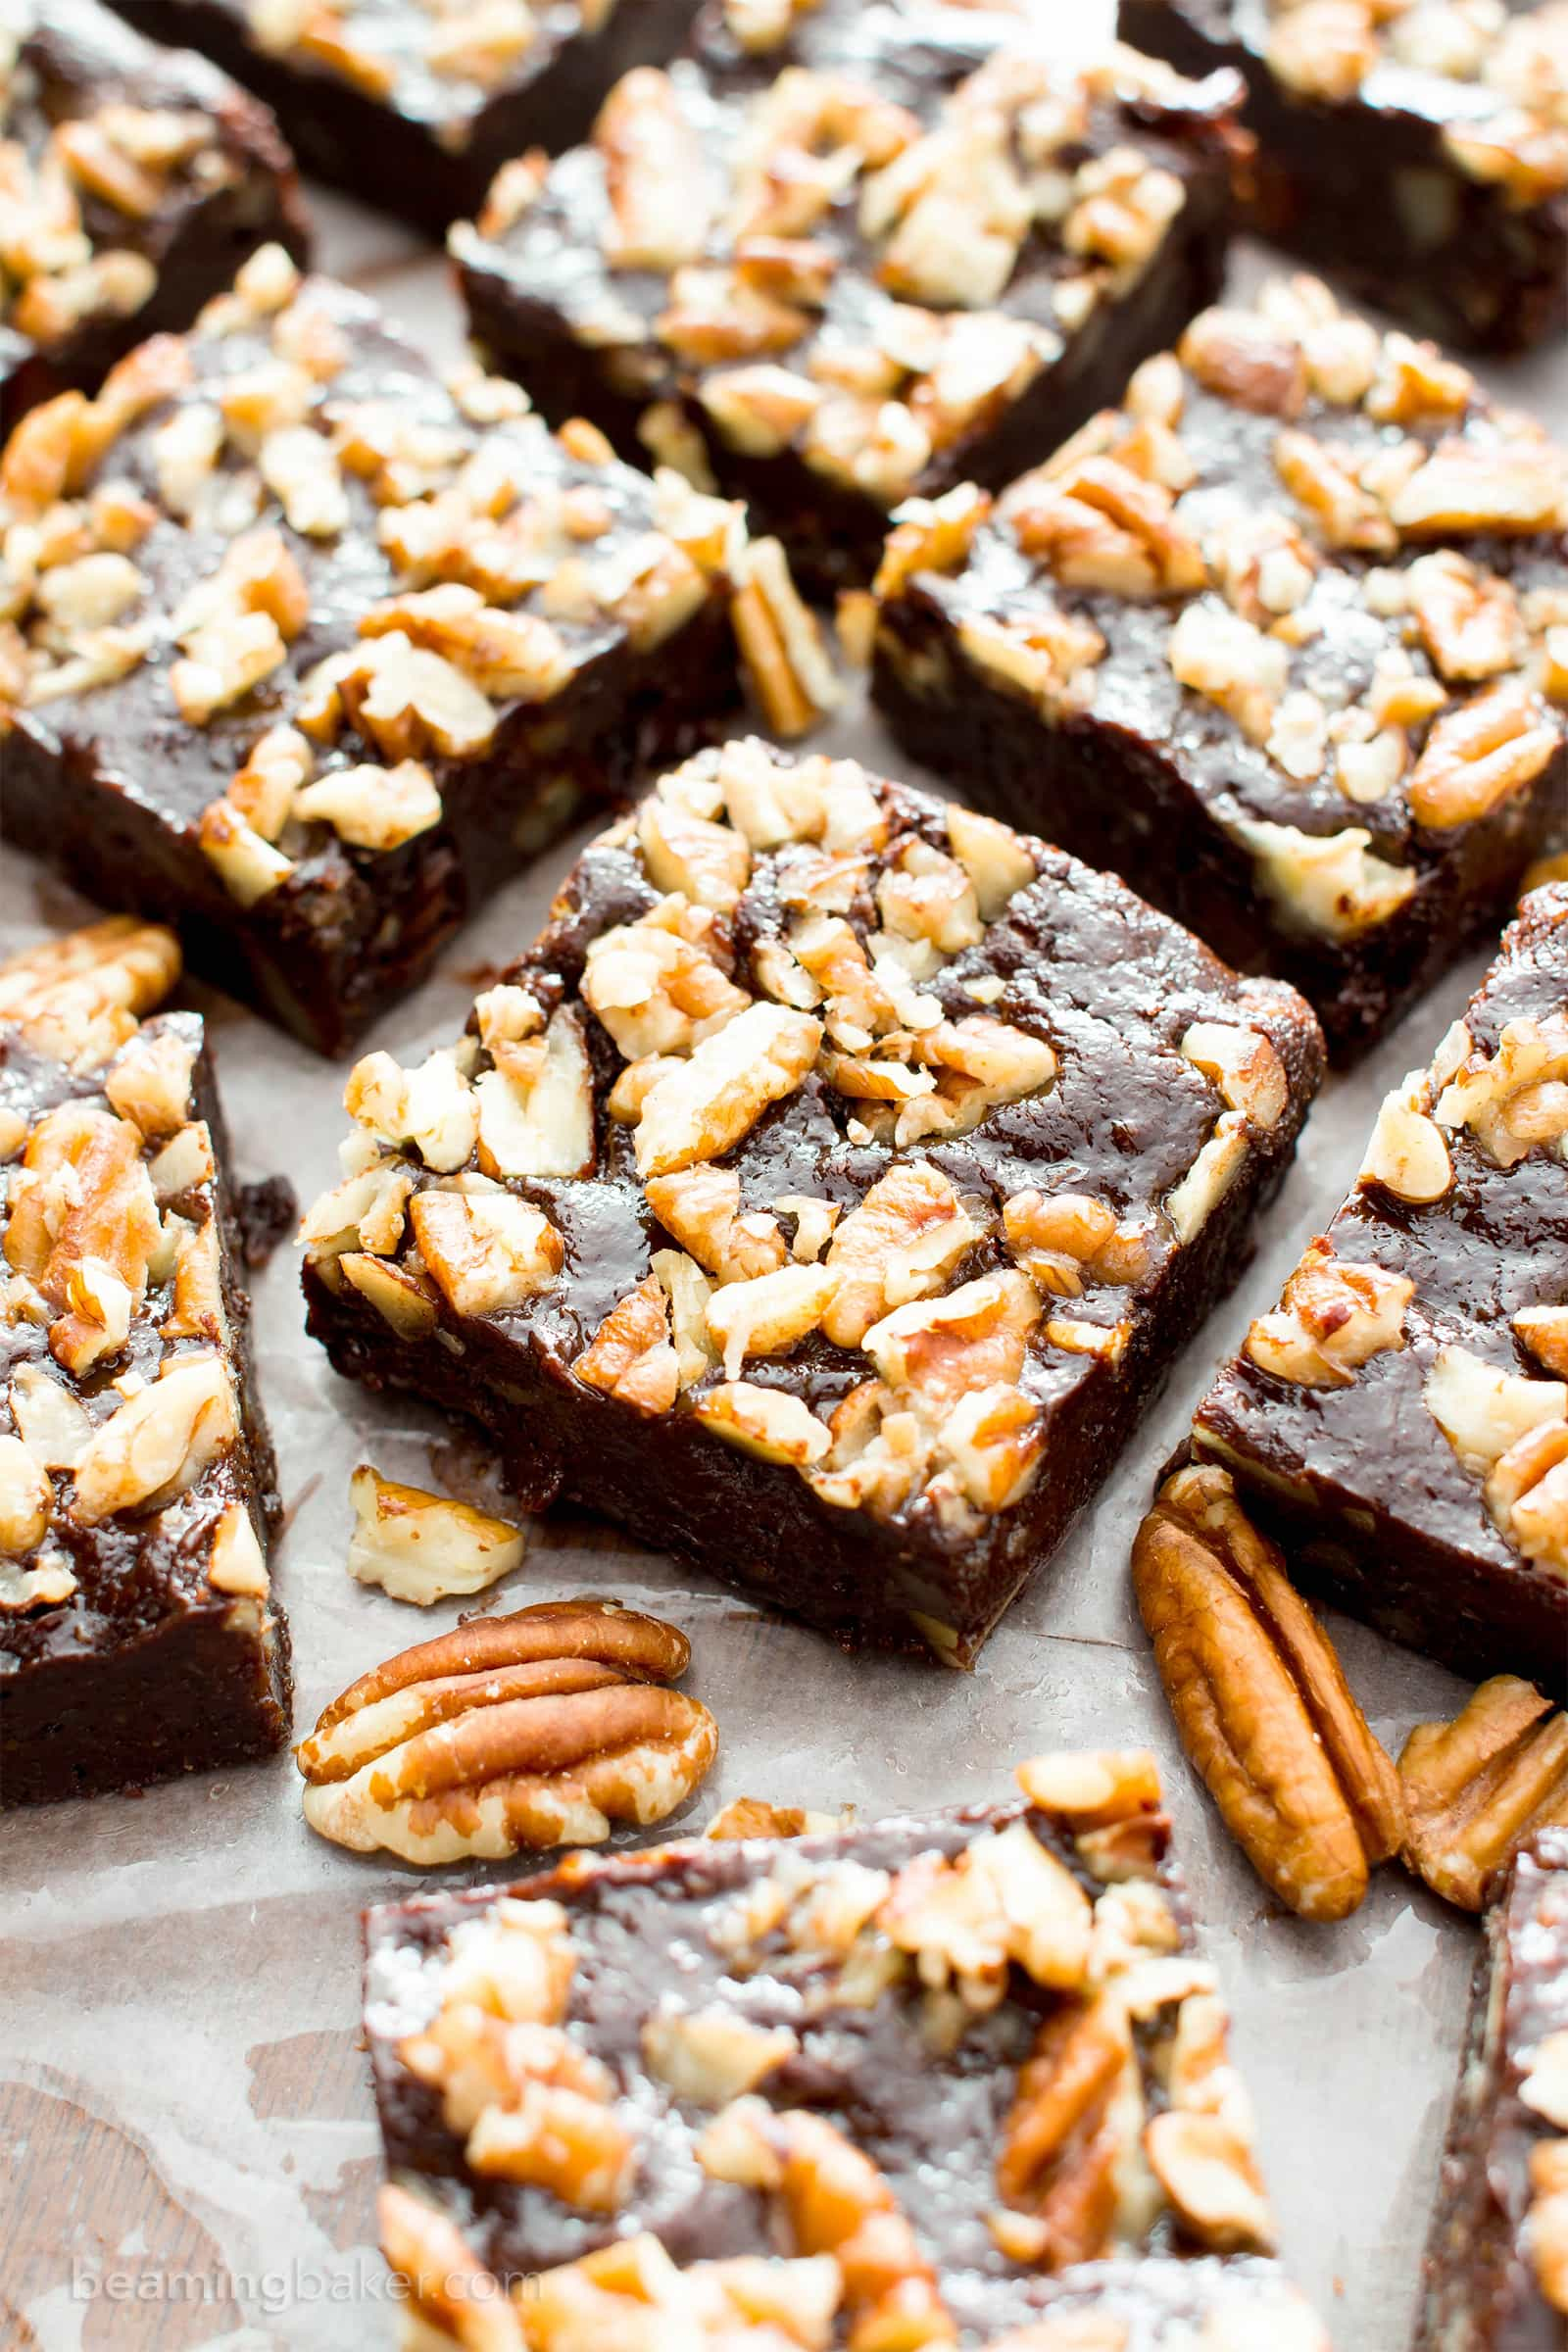 Super Fudgy Paleo Maple Pecan Brownies (V, GF): supremely fudgy chocolate brownies topped with delightfully sweet maple pecans. #Paleo #Vegan #GlutenFree #DairyFree #Chocolate #Dessert | Recipe on BeamingBaker.com